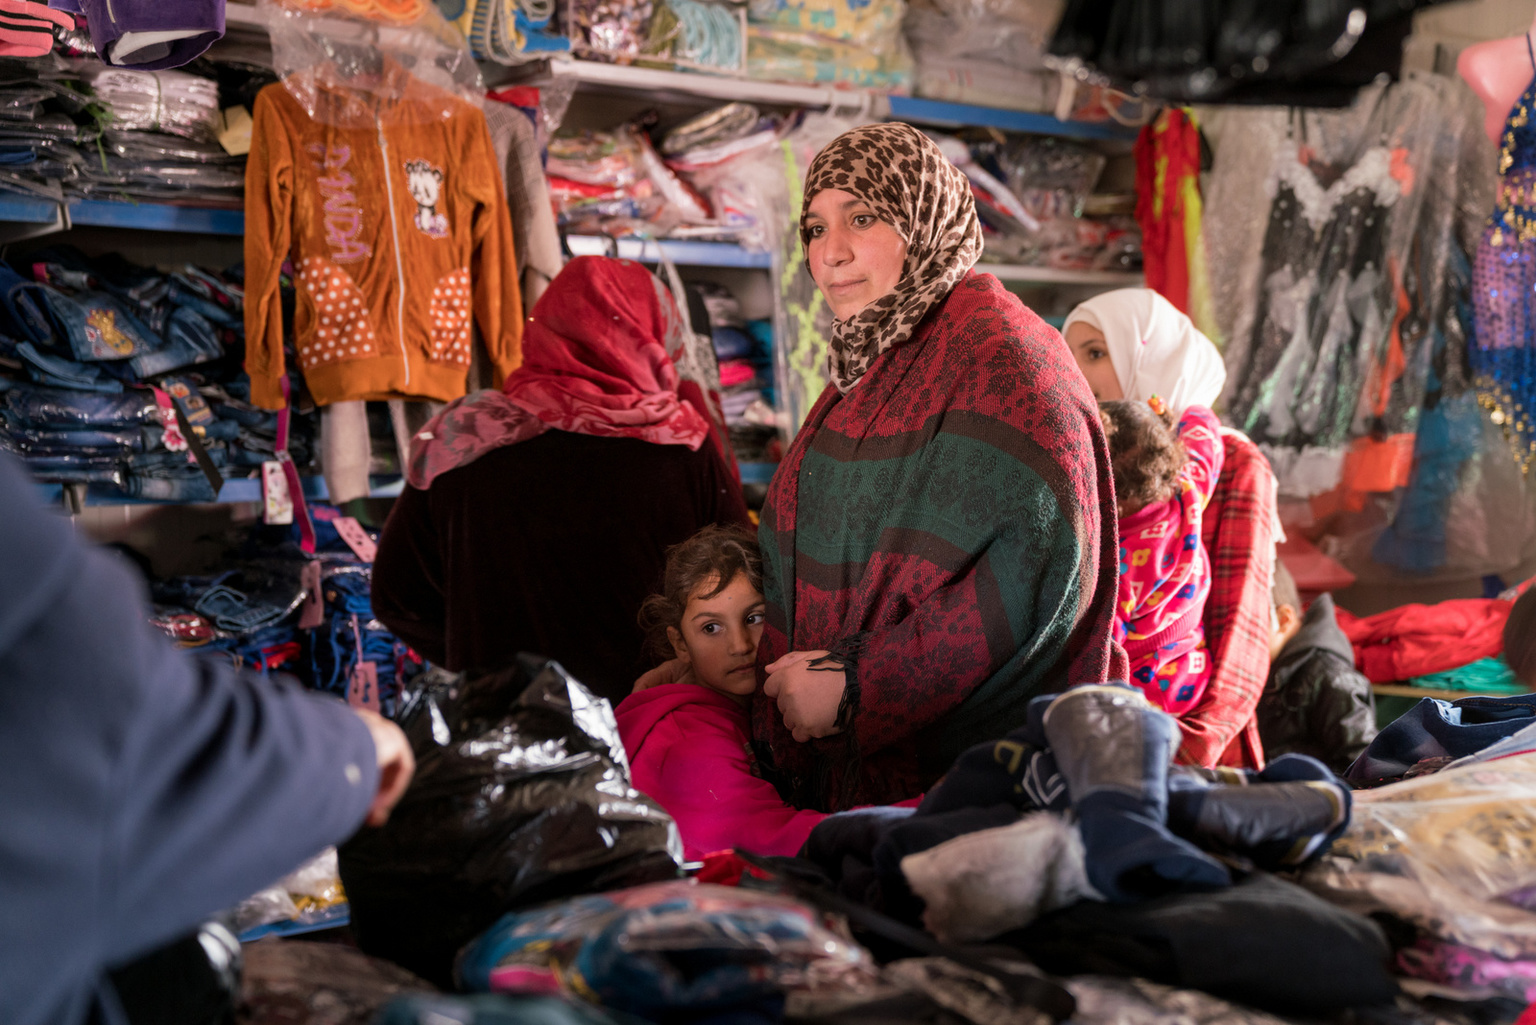 Manar, 34 years old, buying winter clothes for her children at a shop in Za'atari camp with the cash support from UNICEF.